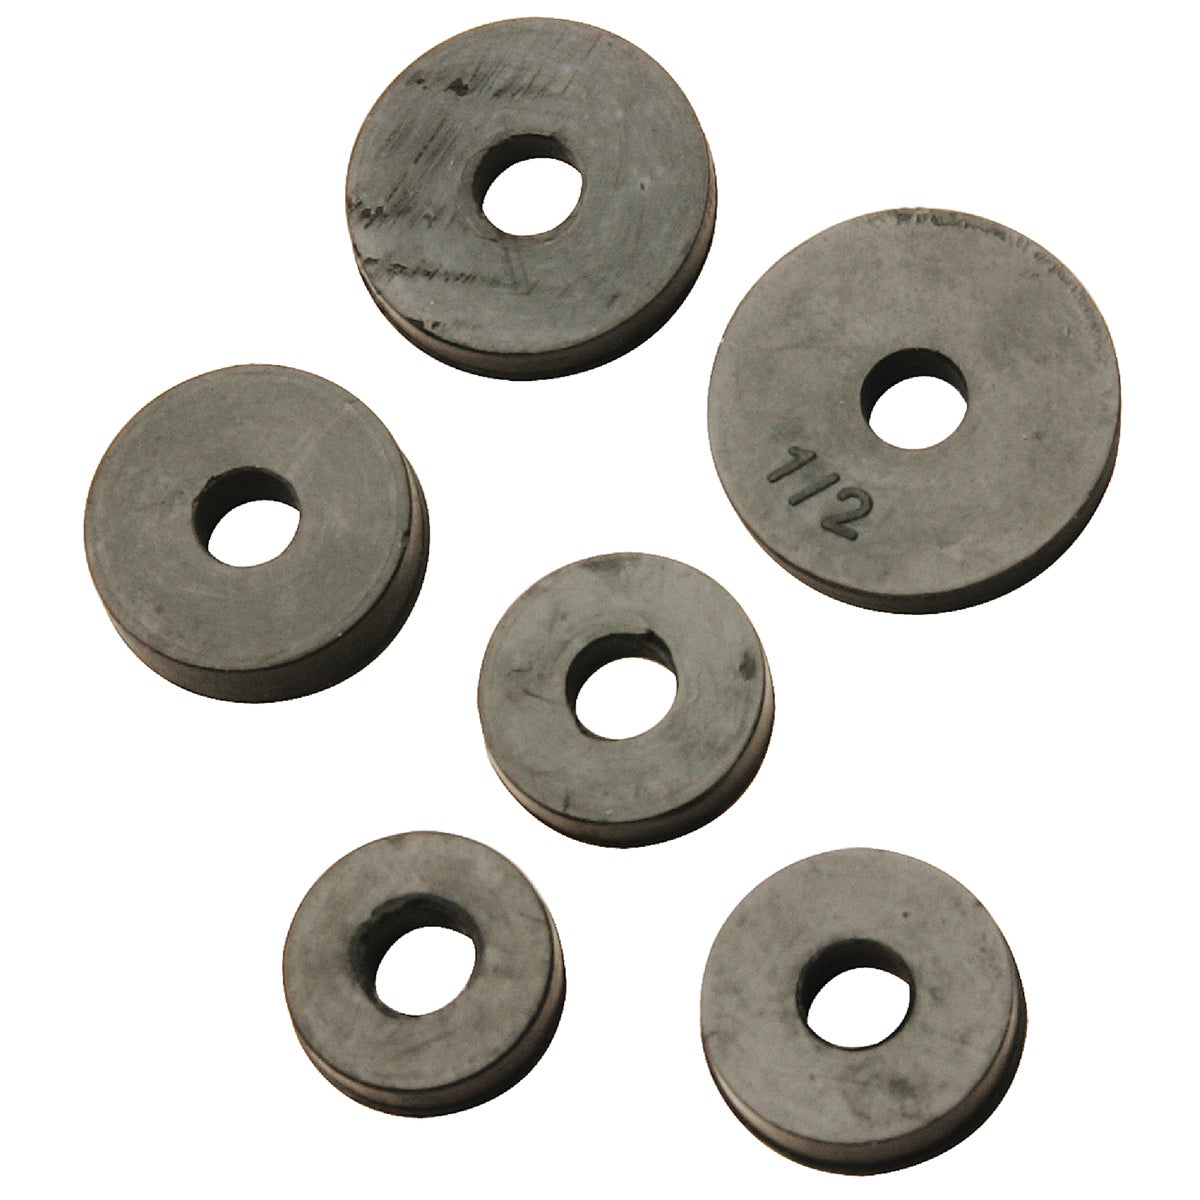 FLAT WASHER ASSORTMENT - 400685 by Plumb Pak/keeney Mfg